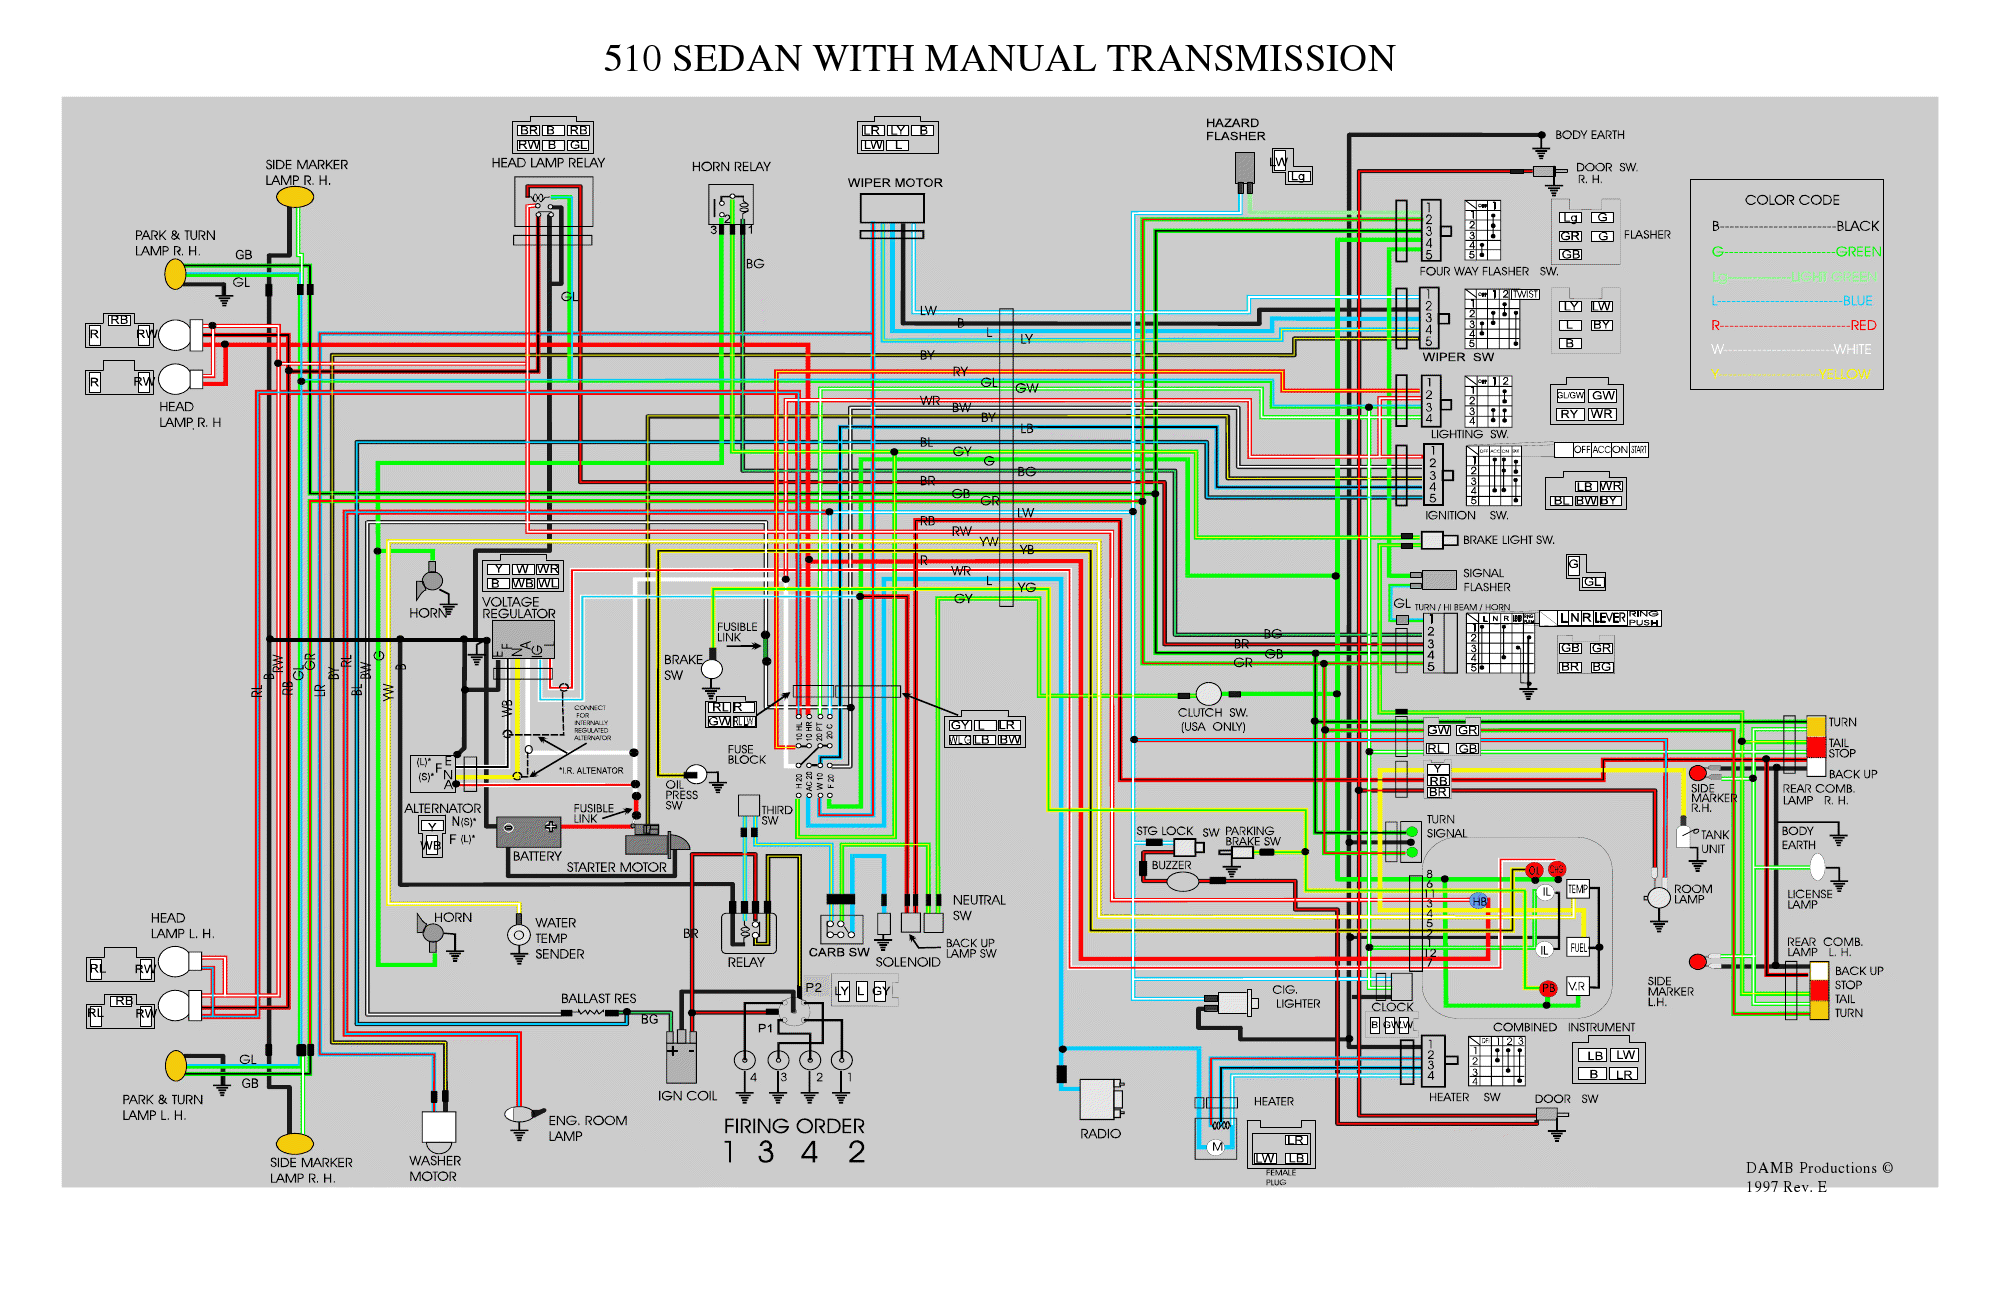 datsun_510_wiring_diagram datsun 510 wiring diagram z car 240z wiring diagram at webbmarketing.co